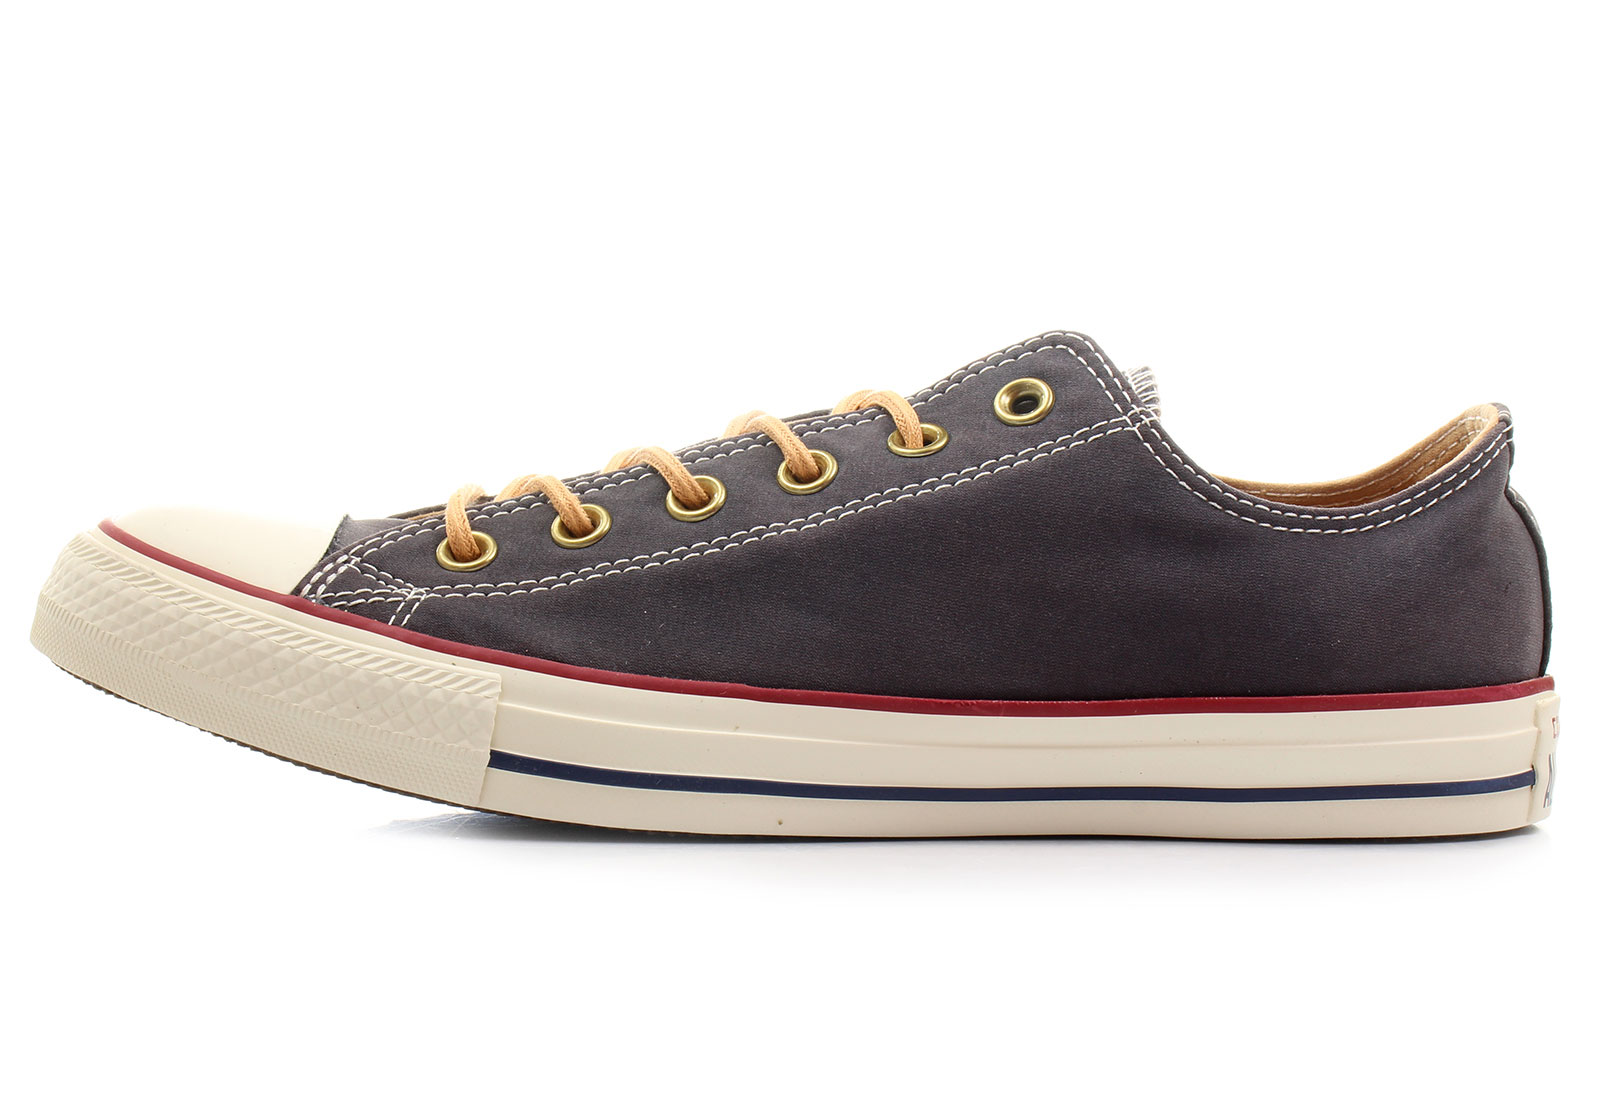 converse sneakers chuck taylor all star specialty ox 151261c online shop for sneakers. Black Bedroom Furniture Sets. Home Design Ideas